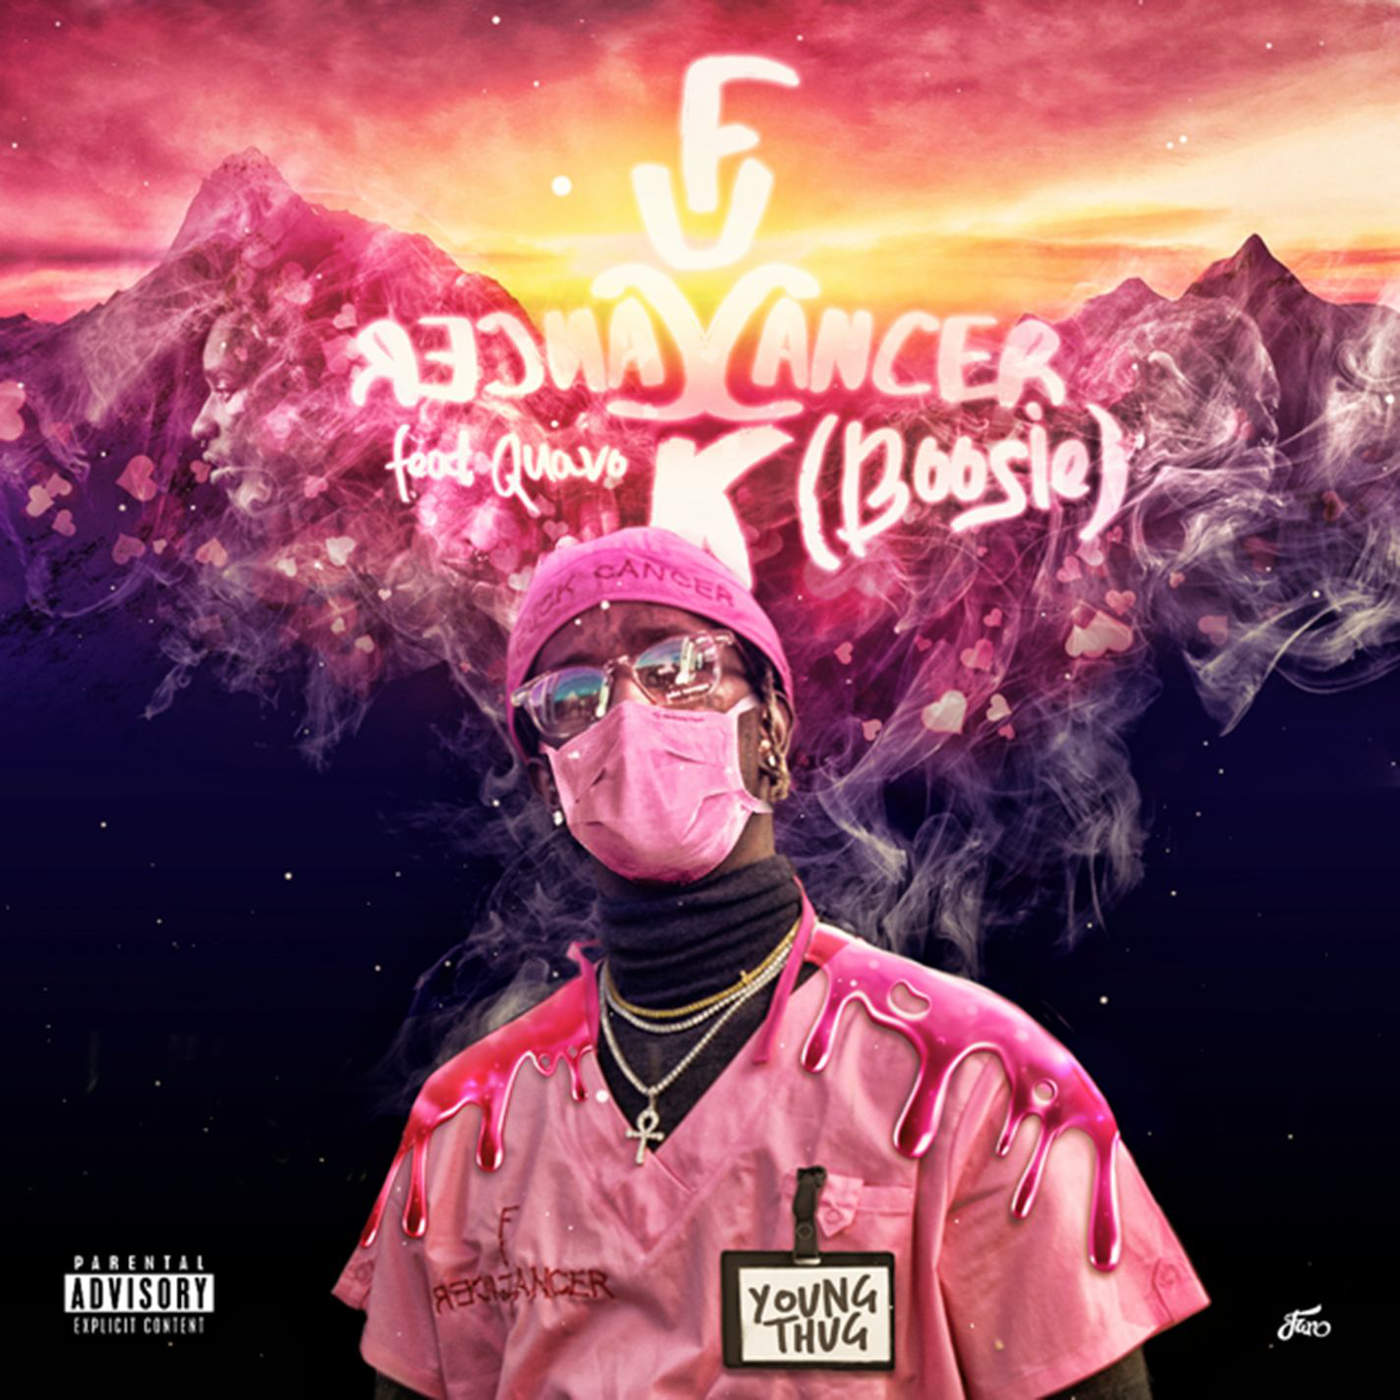 thug young cancer quavo ft feat song album cdq season friend complex slime hiphop single collab cure listen mike rap